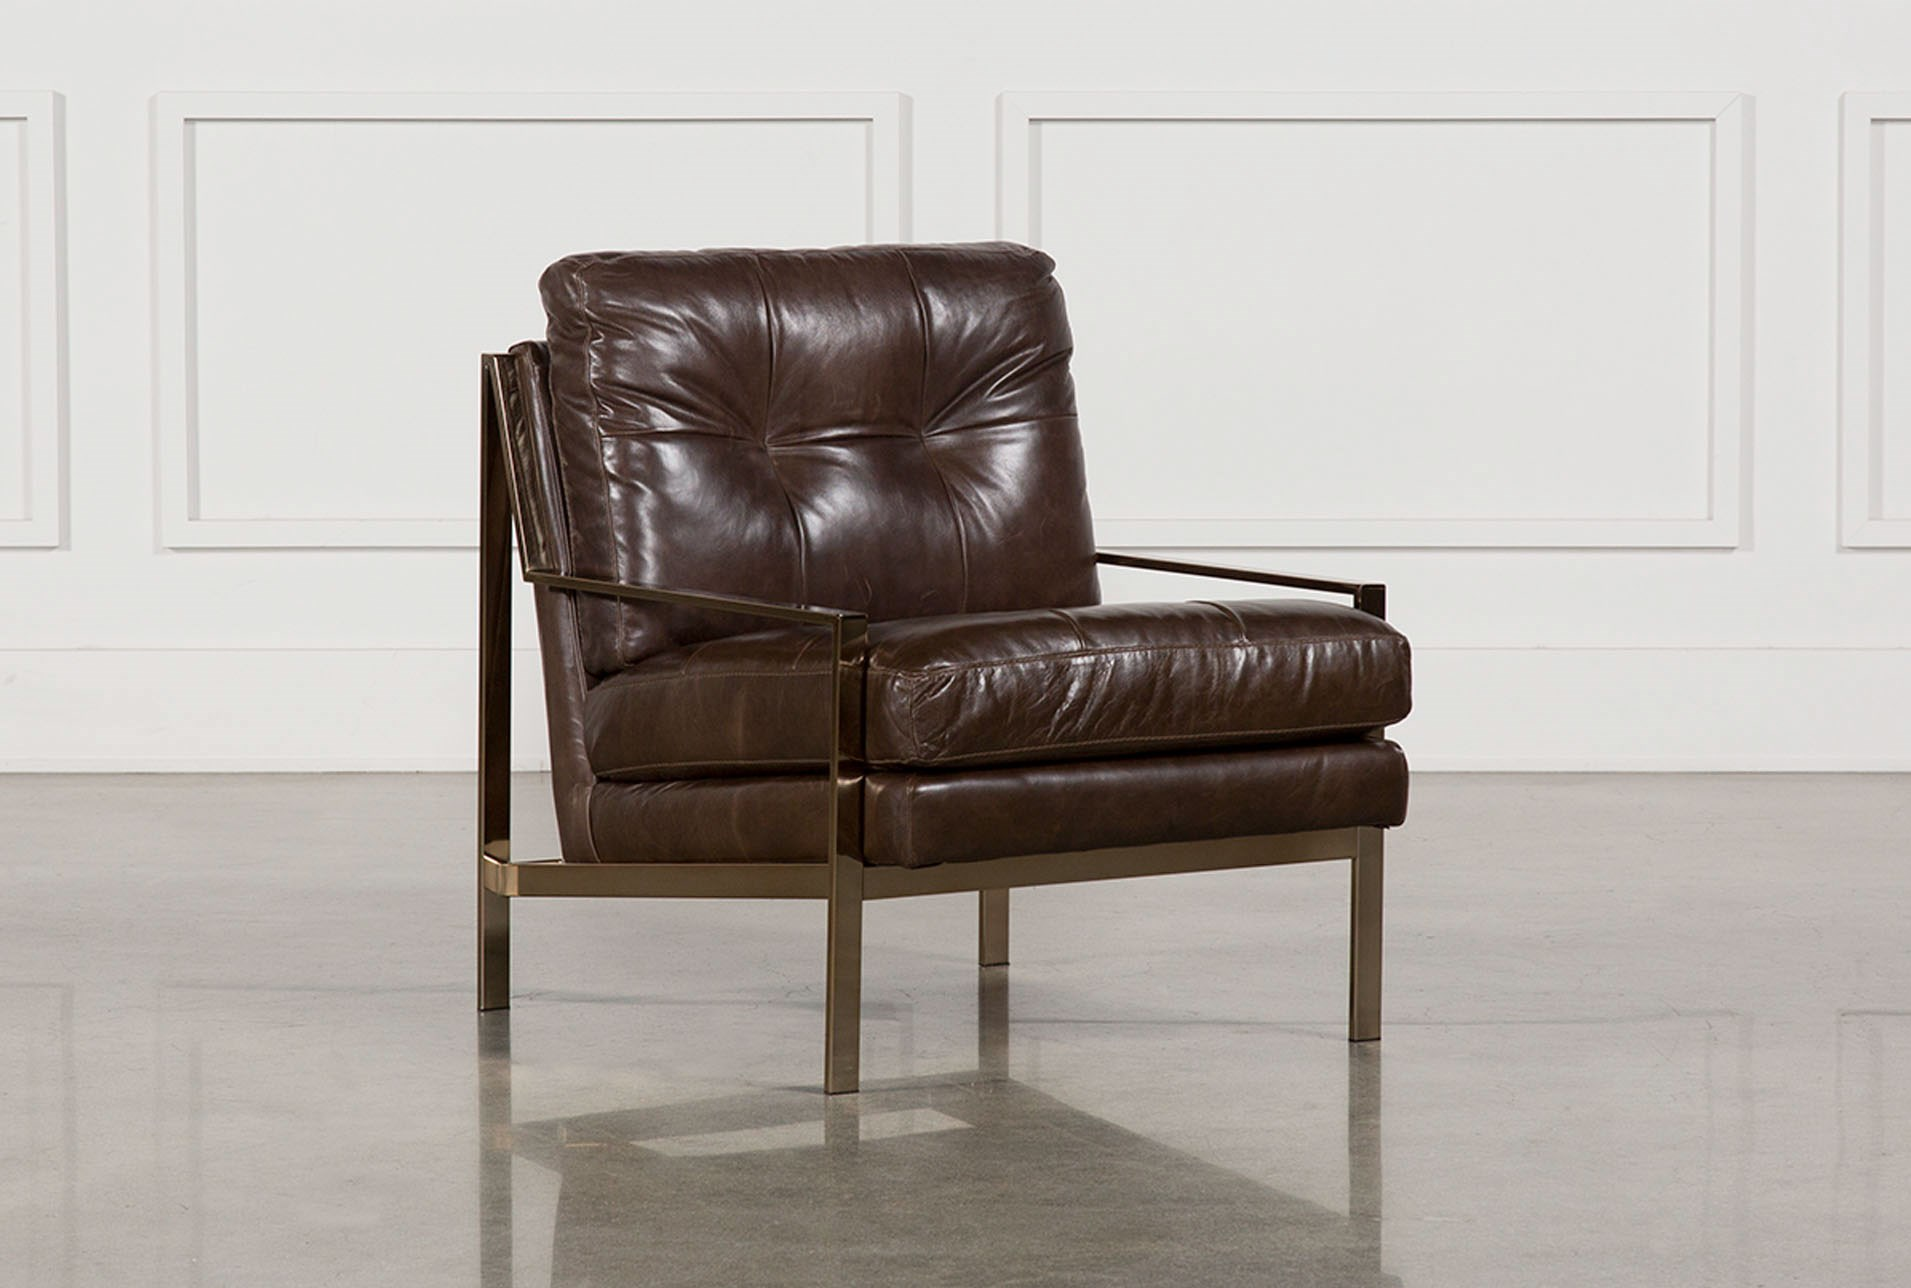 simpli axcchr accent chairs home br products leather chair air faux greer